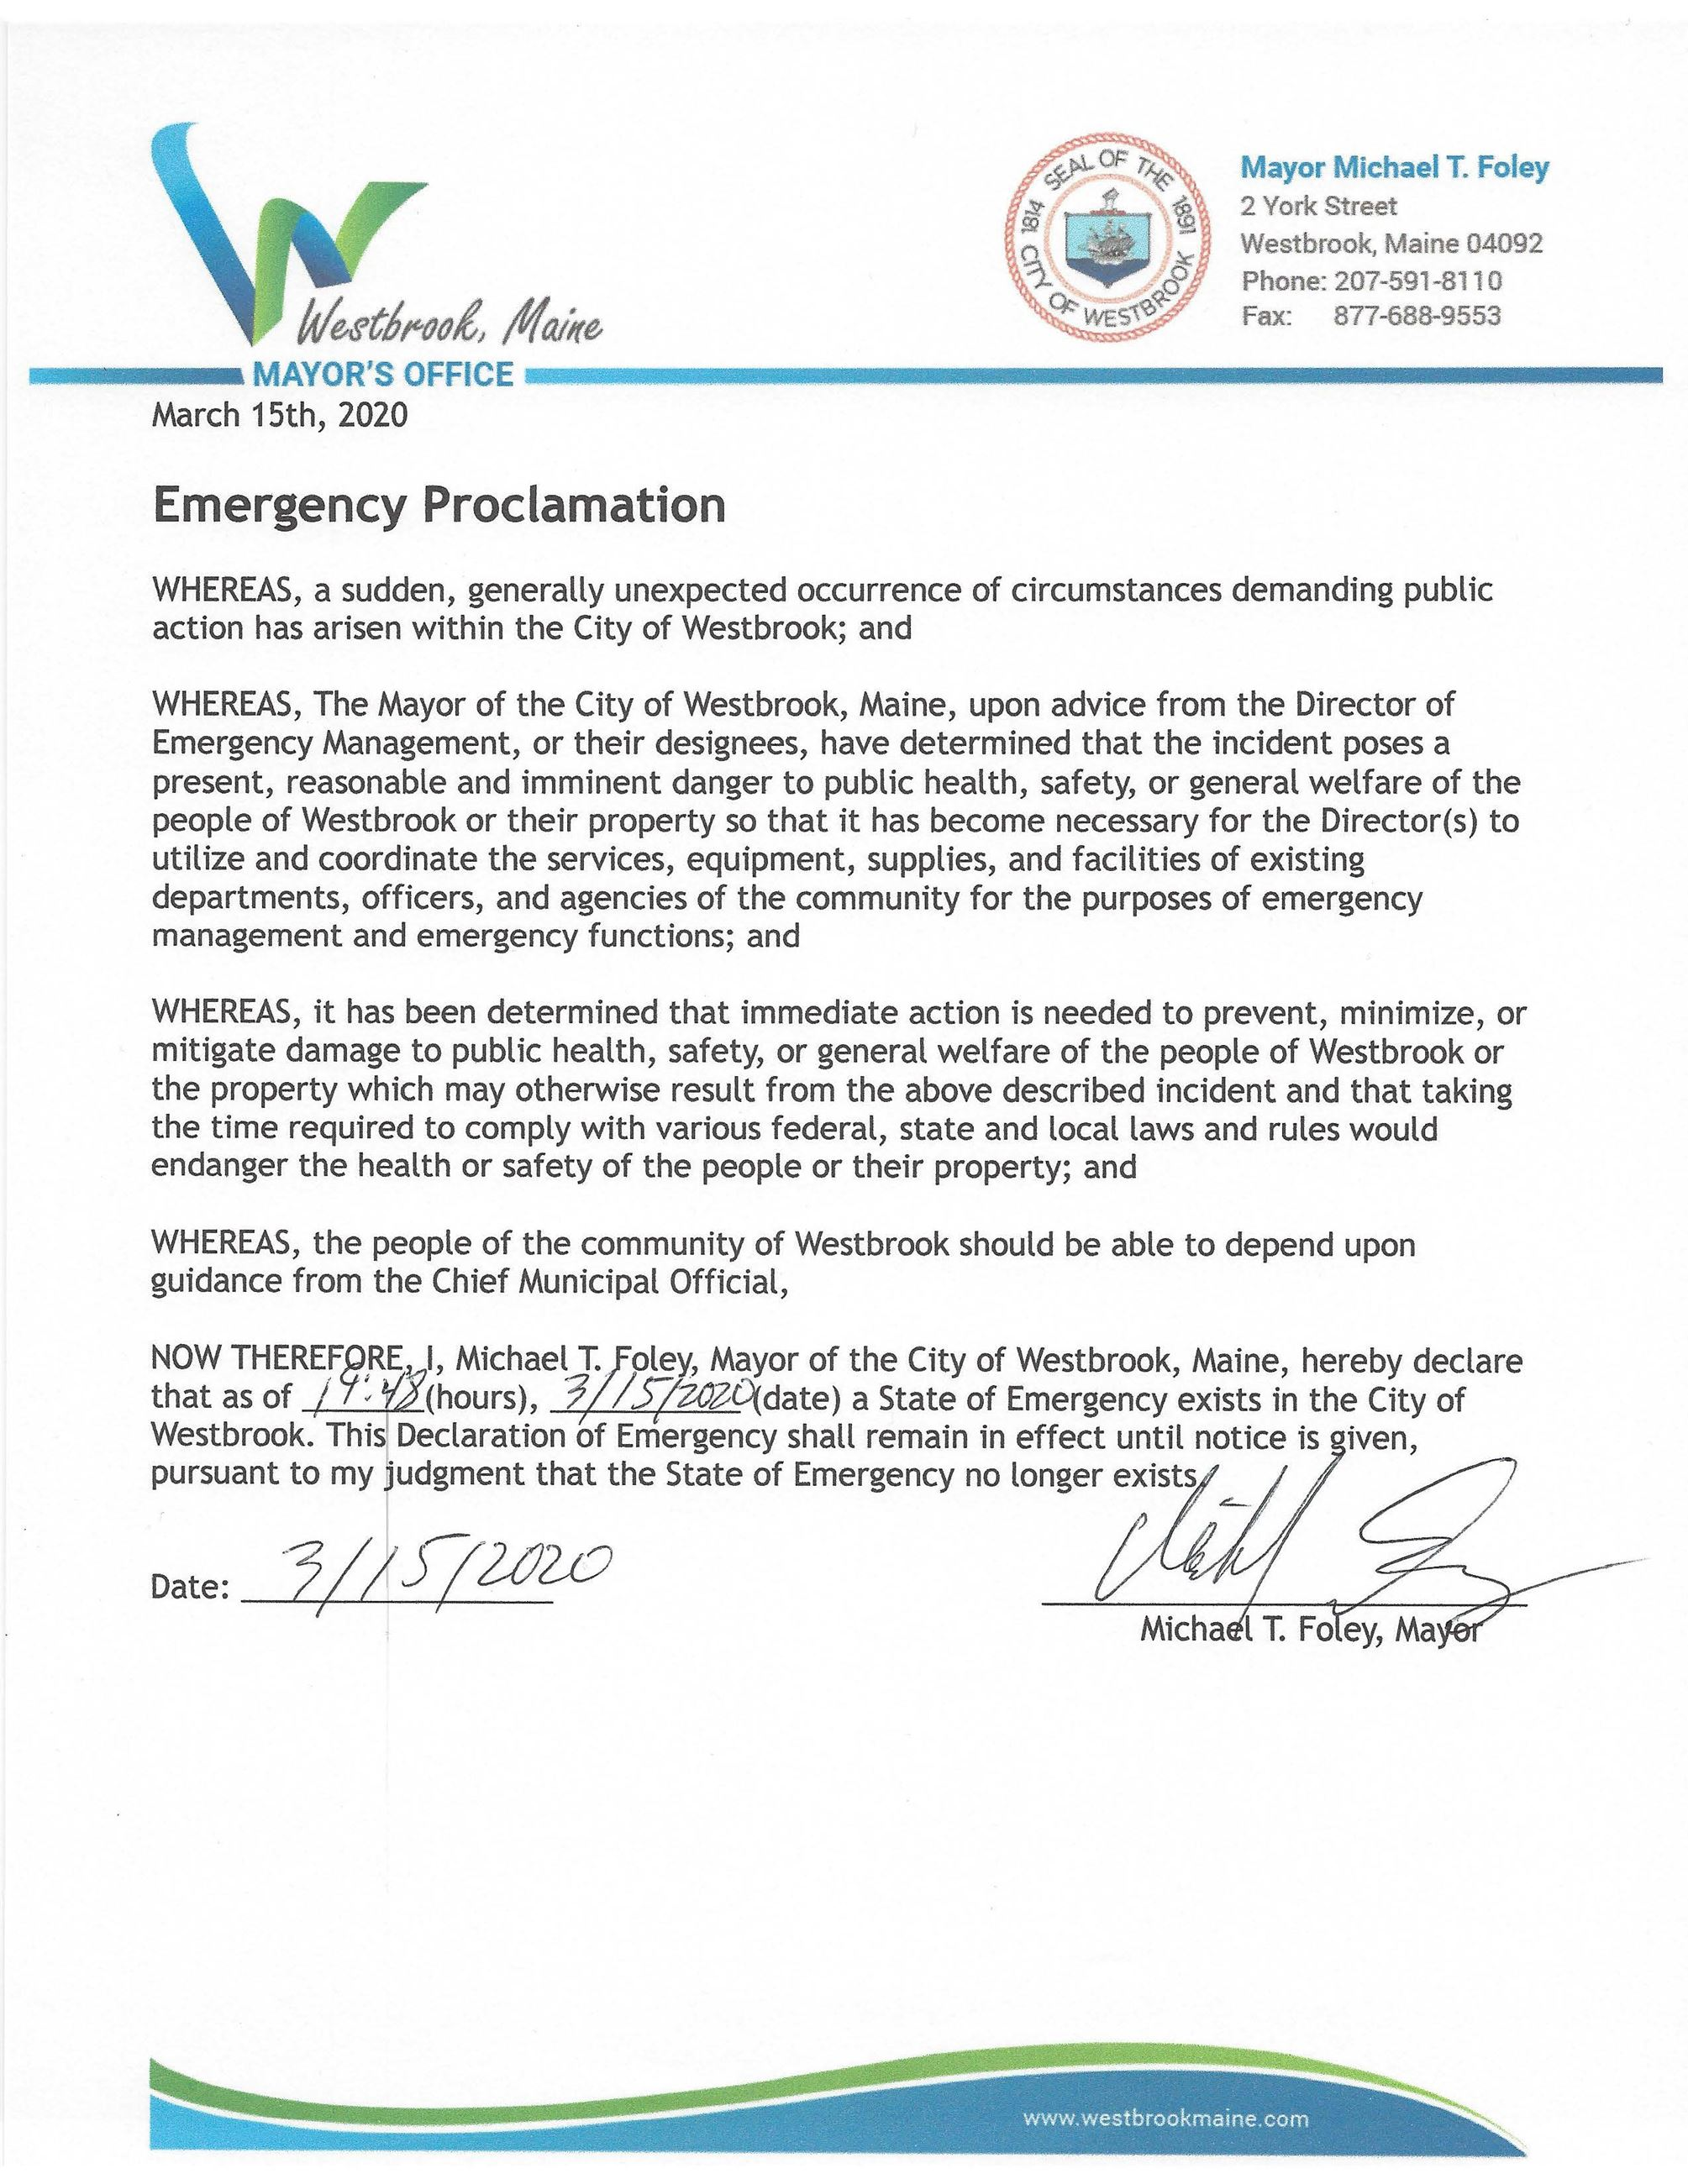 Emergency Proclamation 3.15